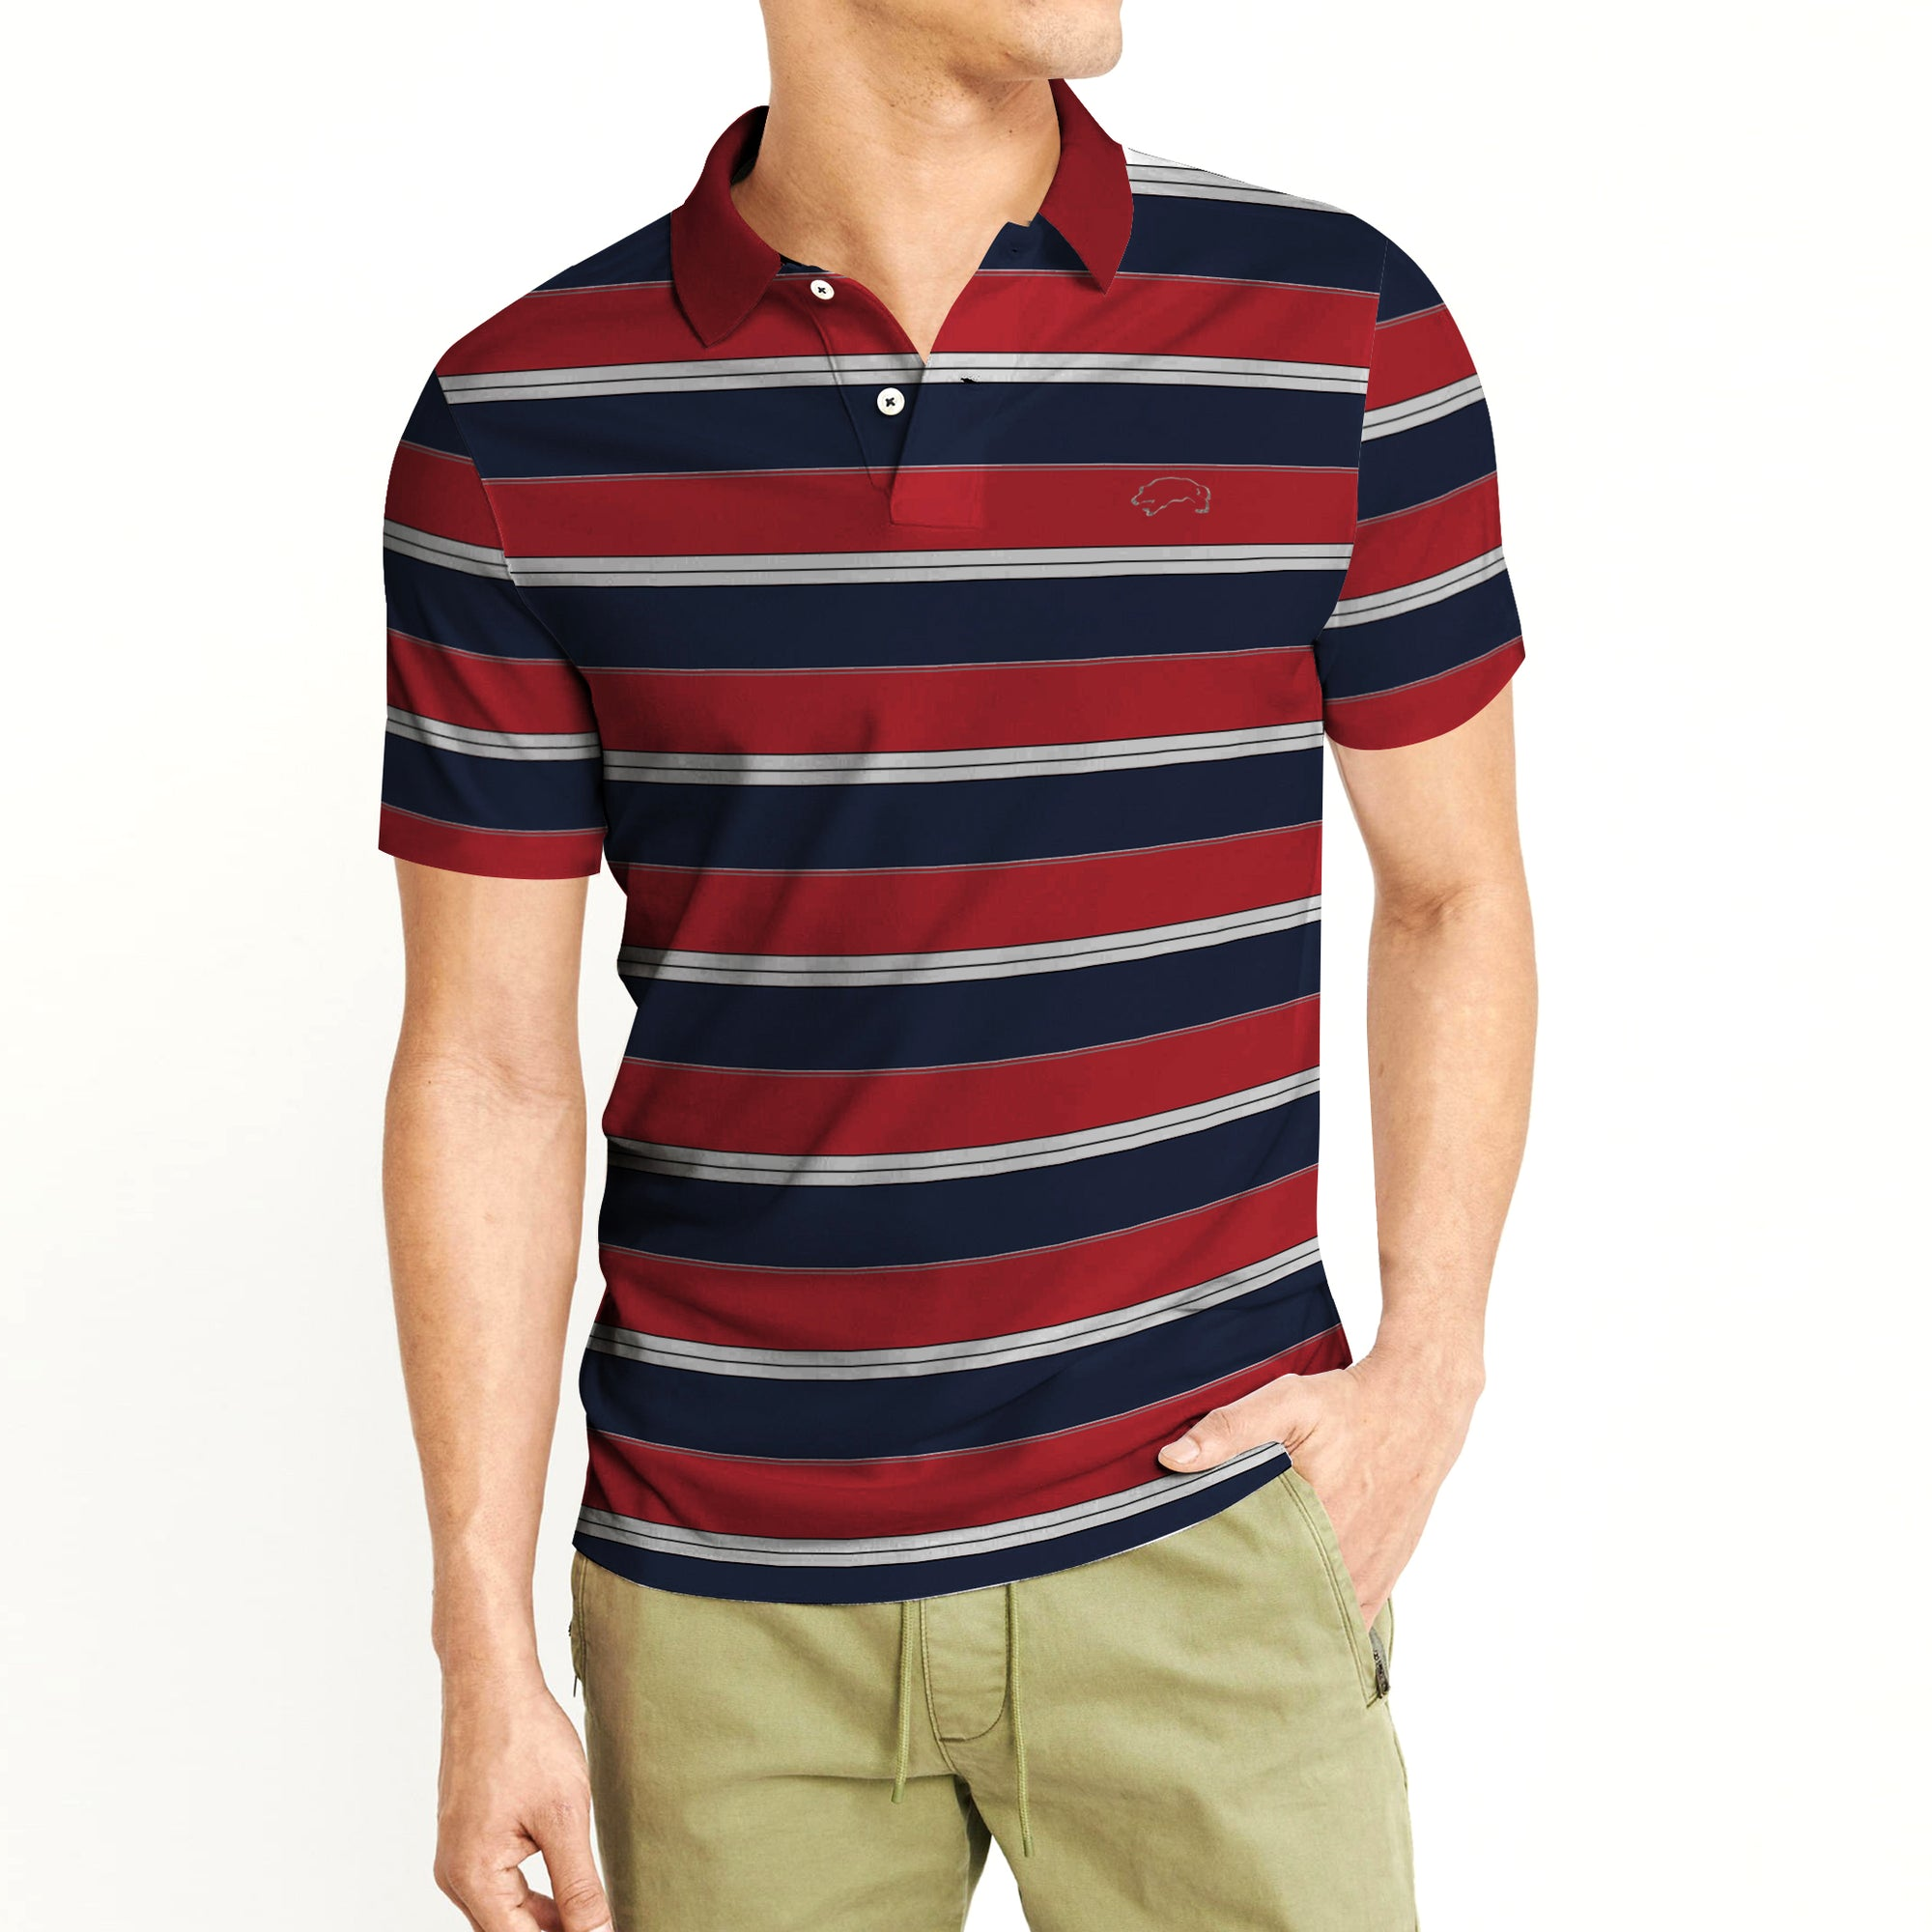 American Rag Short Sleeve Single Jersey Polo Shirt For Men Be9000